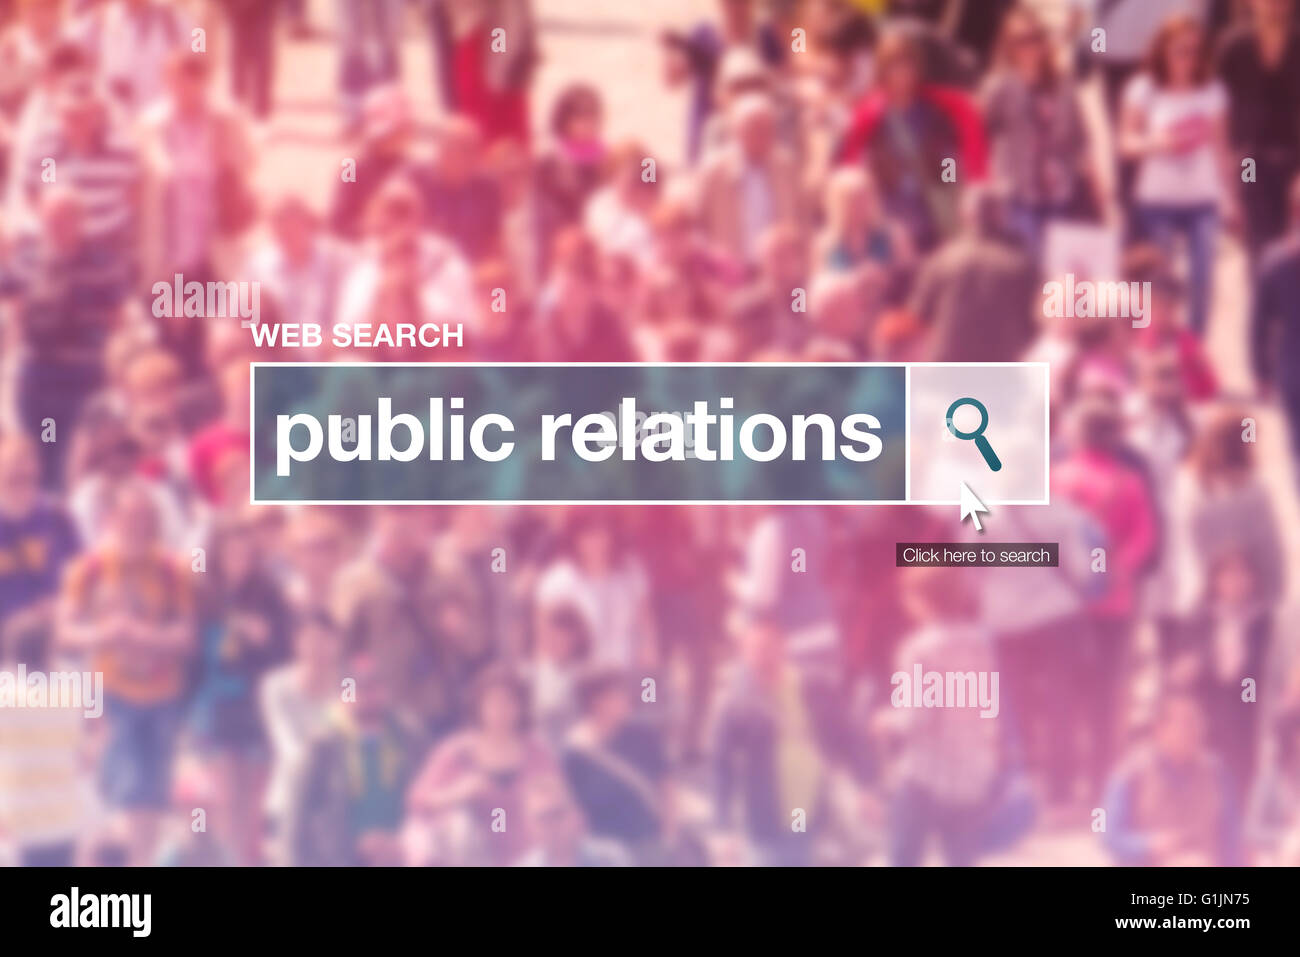 Public relations web search box on internet page. - Stock Image